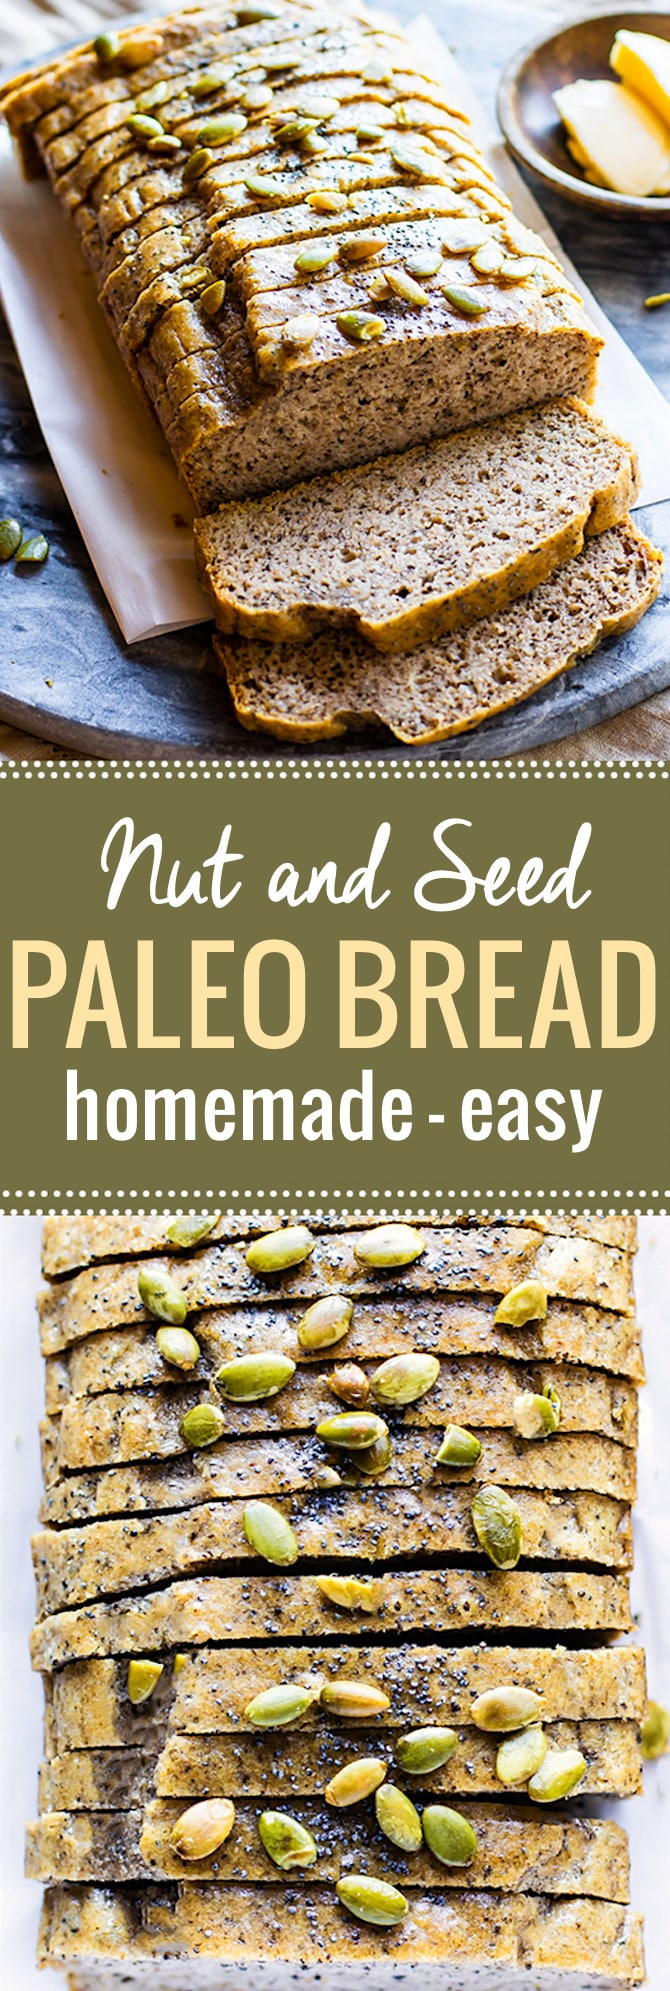 Homemade Nut and Seed Paleo Bread. Finally,  a homemade paleo bread that is soft, easy to make, and great for sandwiches. This wholesome nutty bread is freezable and low carb! A grain free bread to enjoy at each meal. @cottercrunch